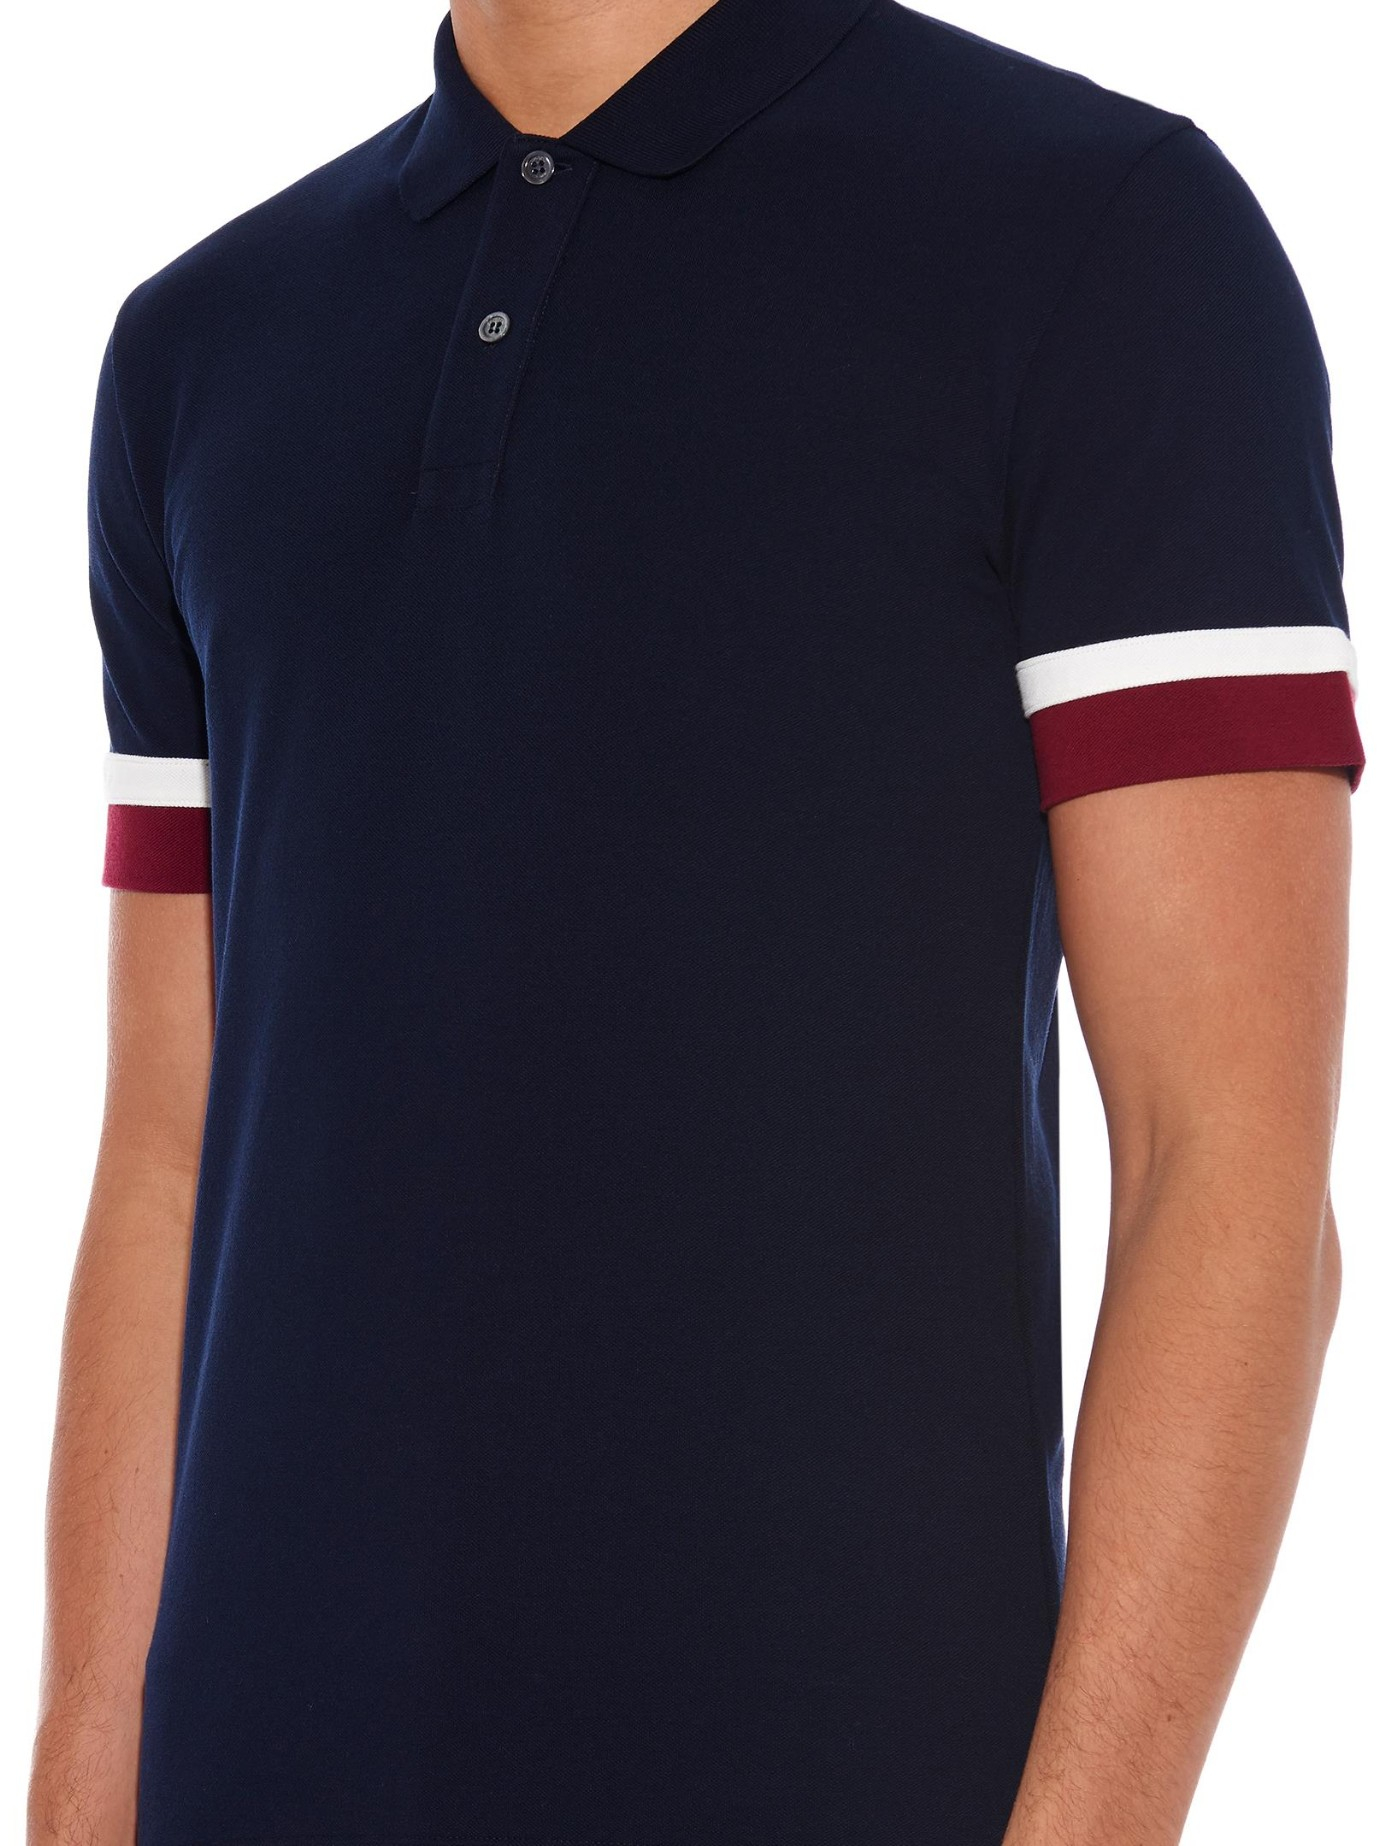 77dbb11f Gucci Contrast-Cuff Cotton-Piqué Polo Shirt in Blue for Men - Lyst